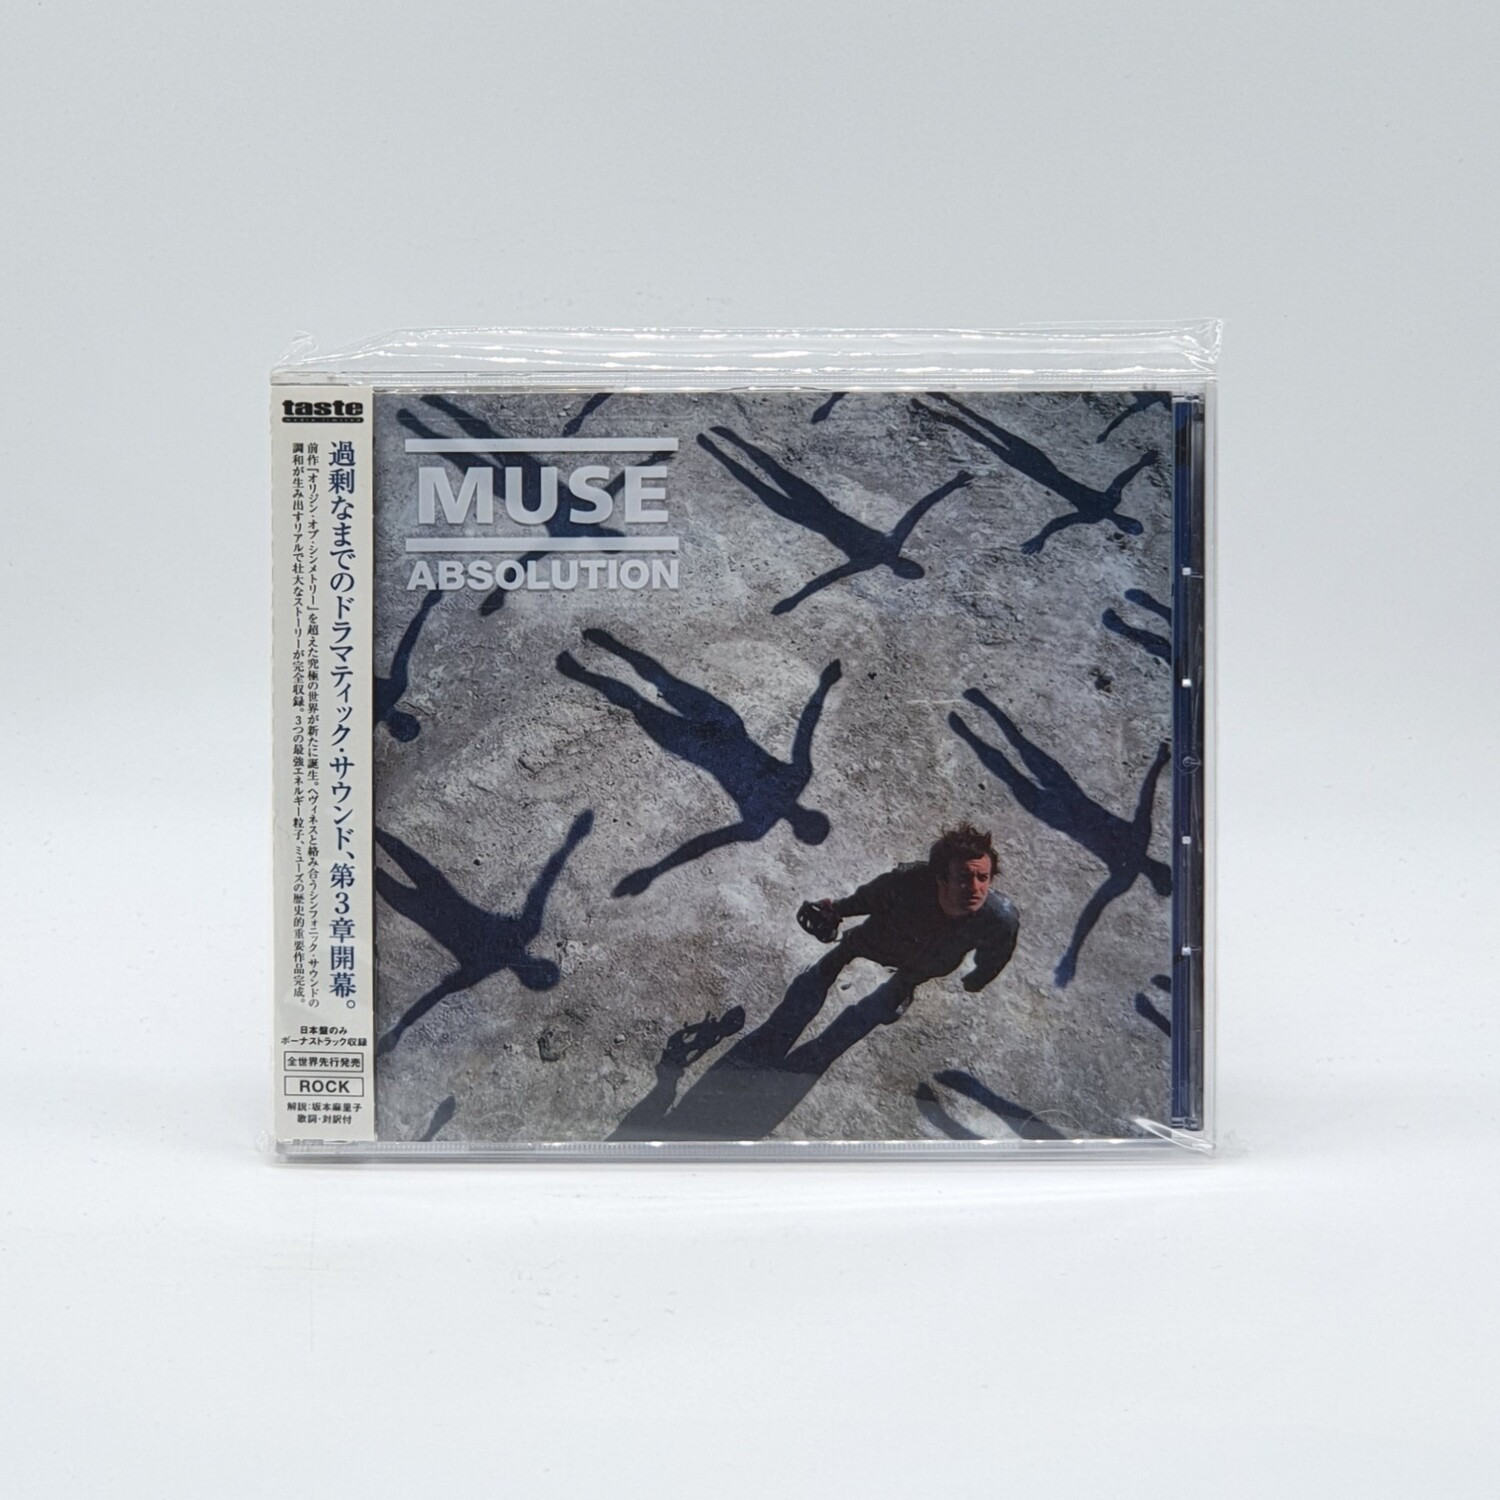 MUSE -ABSOLUTION- CD (JAPAN PRESS)